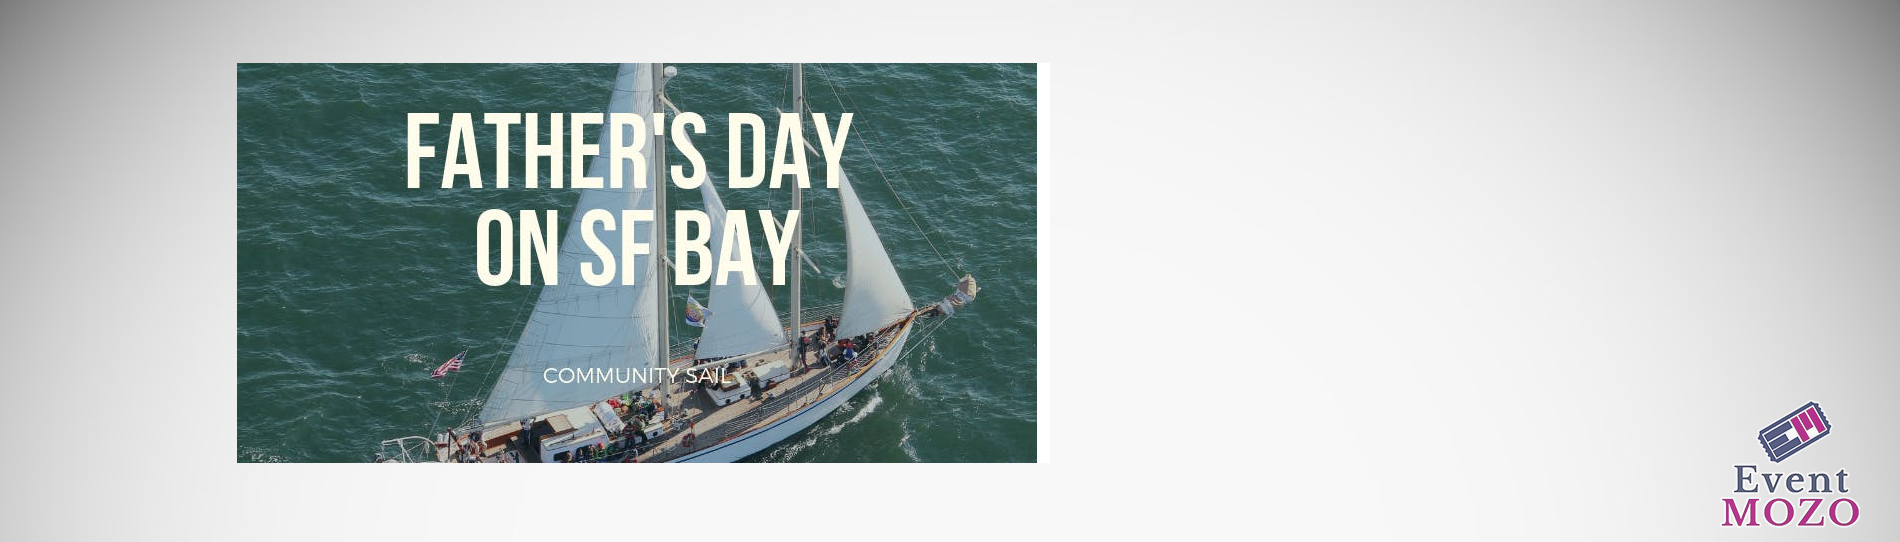 EventMozo Father's Day Sail on the Bay